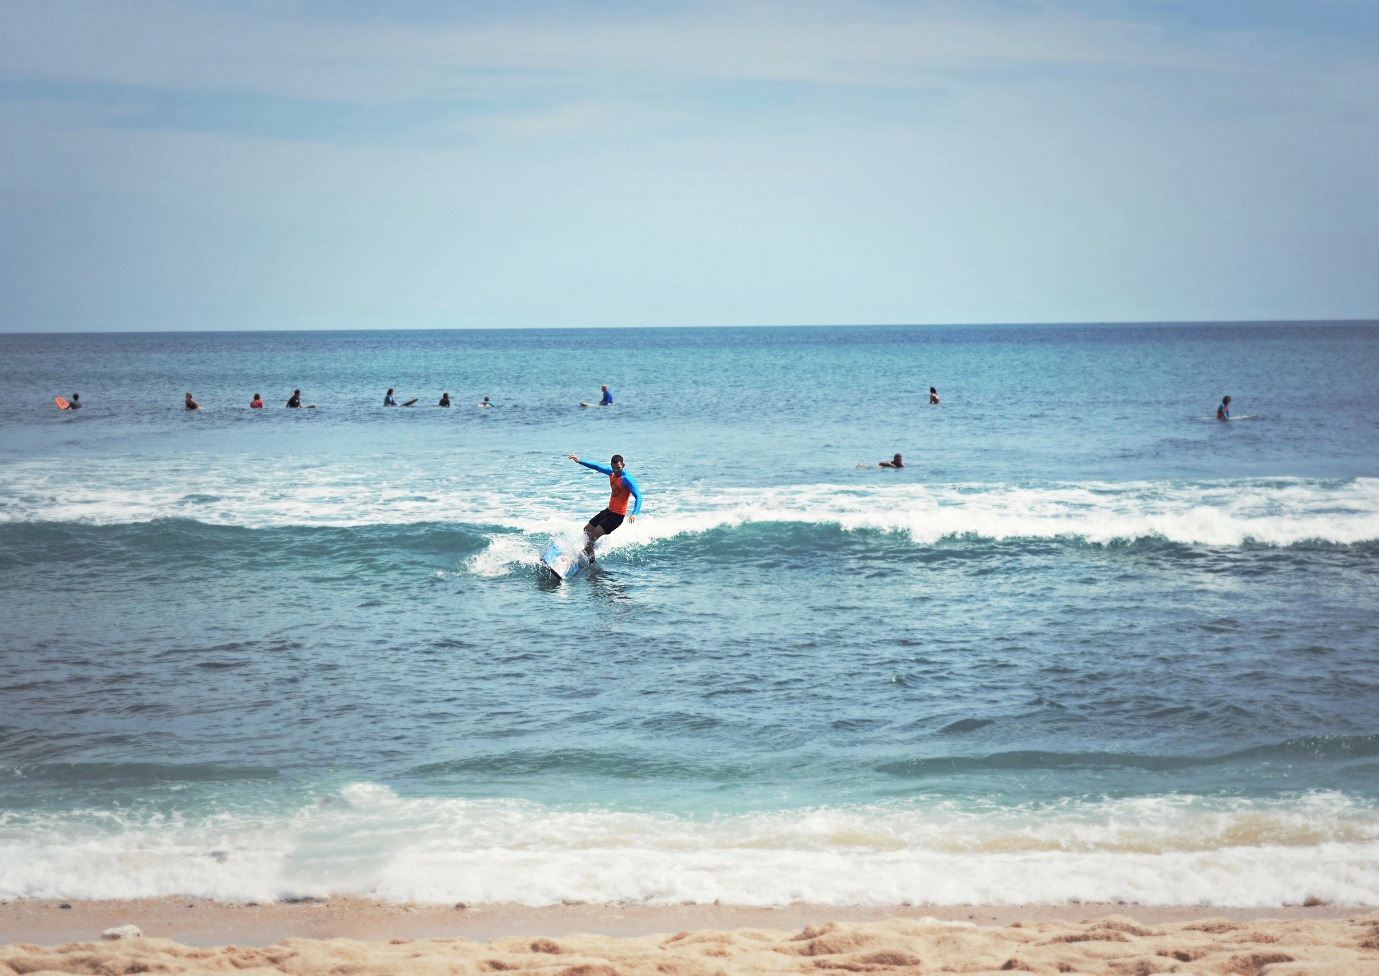 dekel surfing at balangan beach south kuta bali